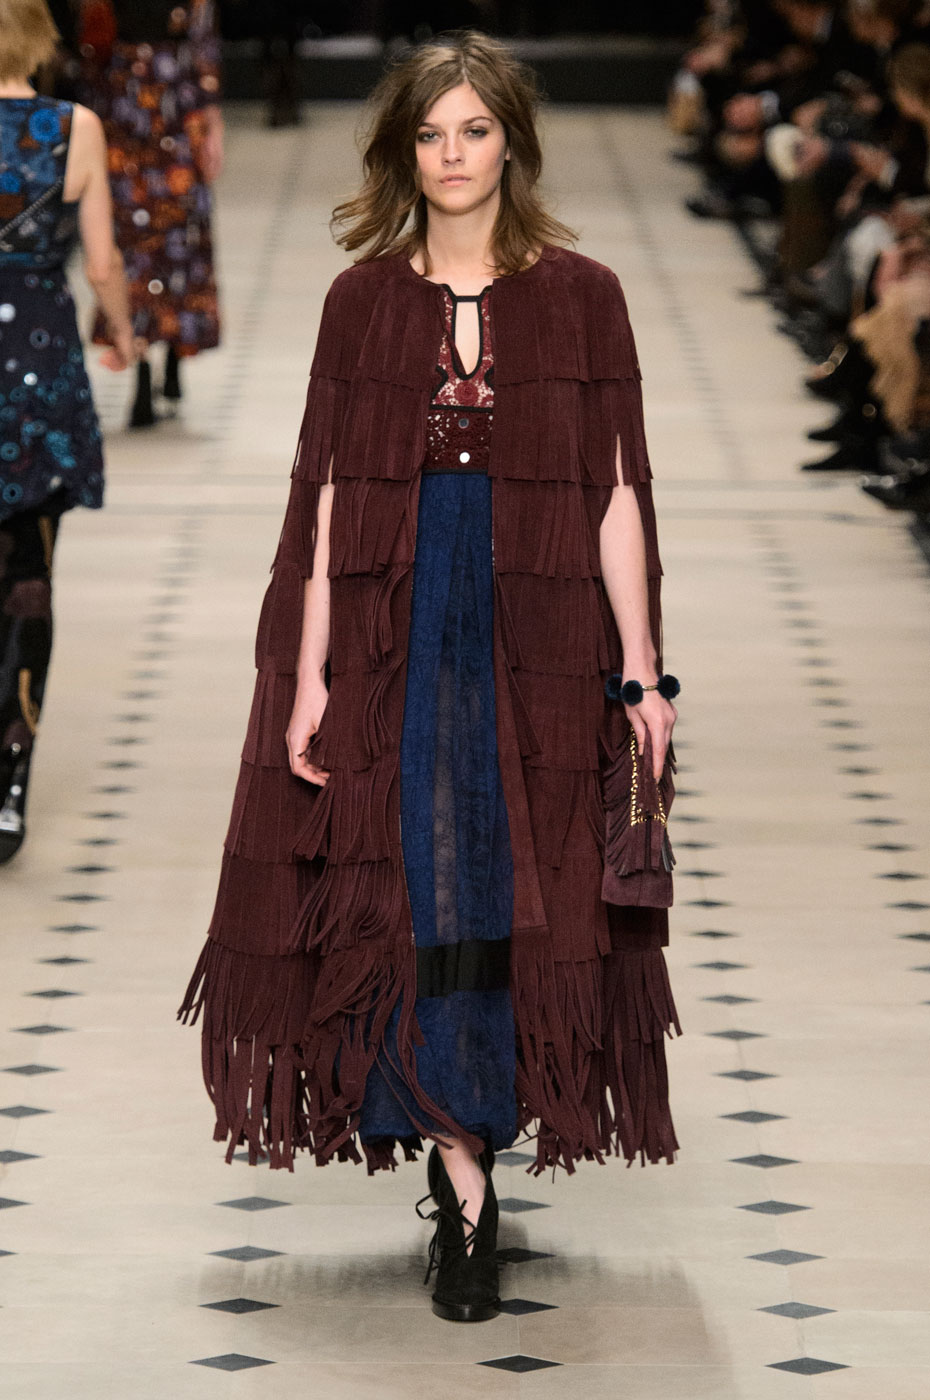 London Fashion Show 2015 Burberry Prorsum Fall